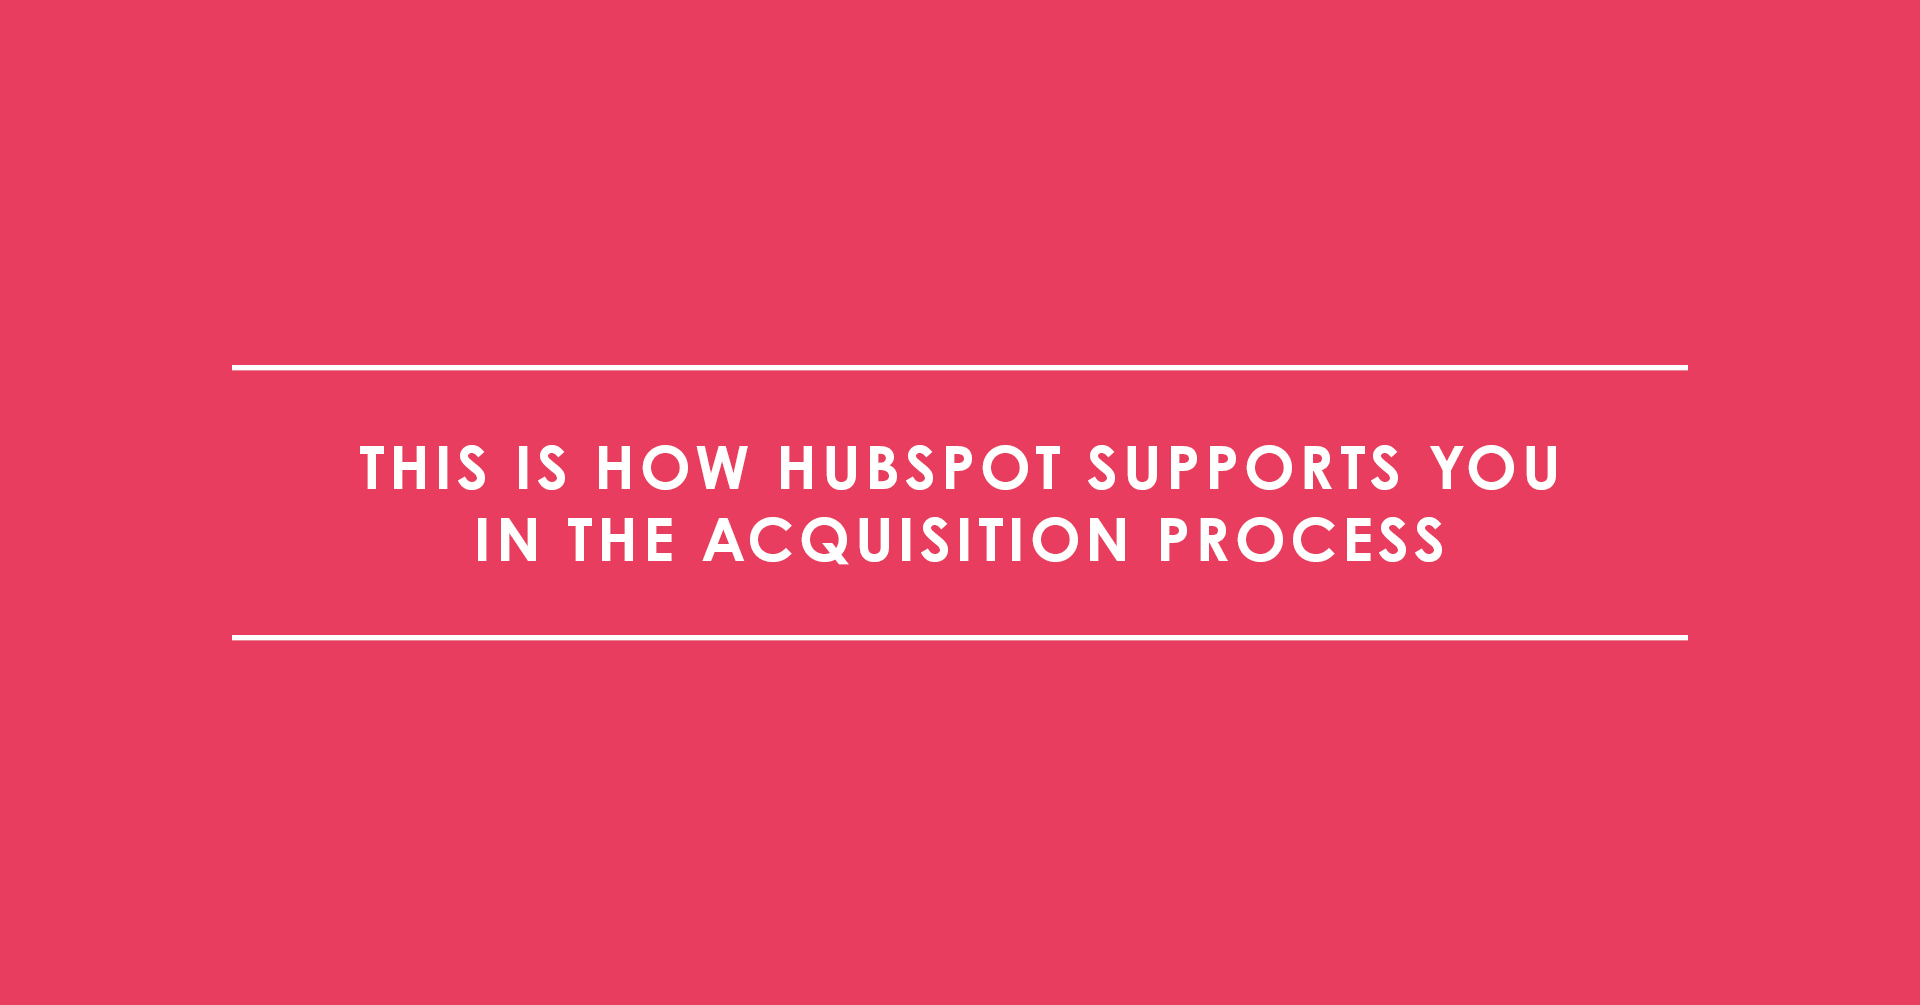 This is how HubSpot supports you in the acquisition process